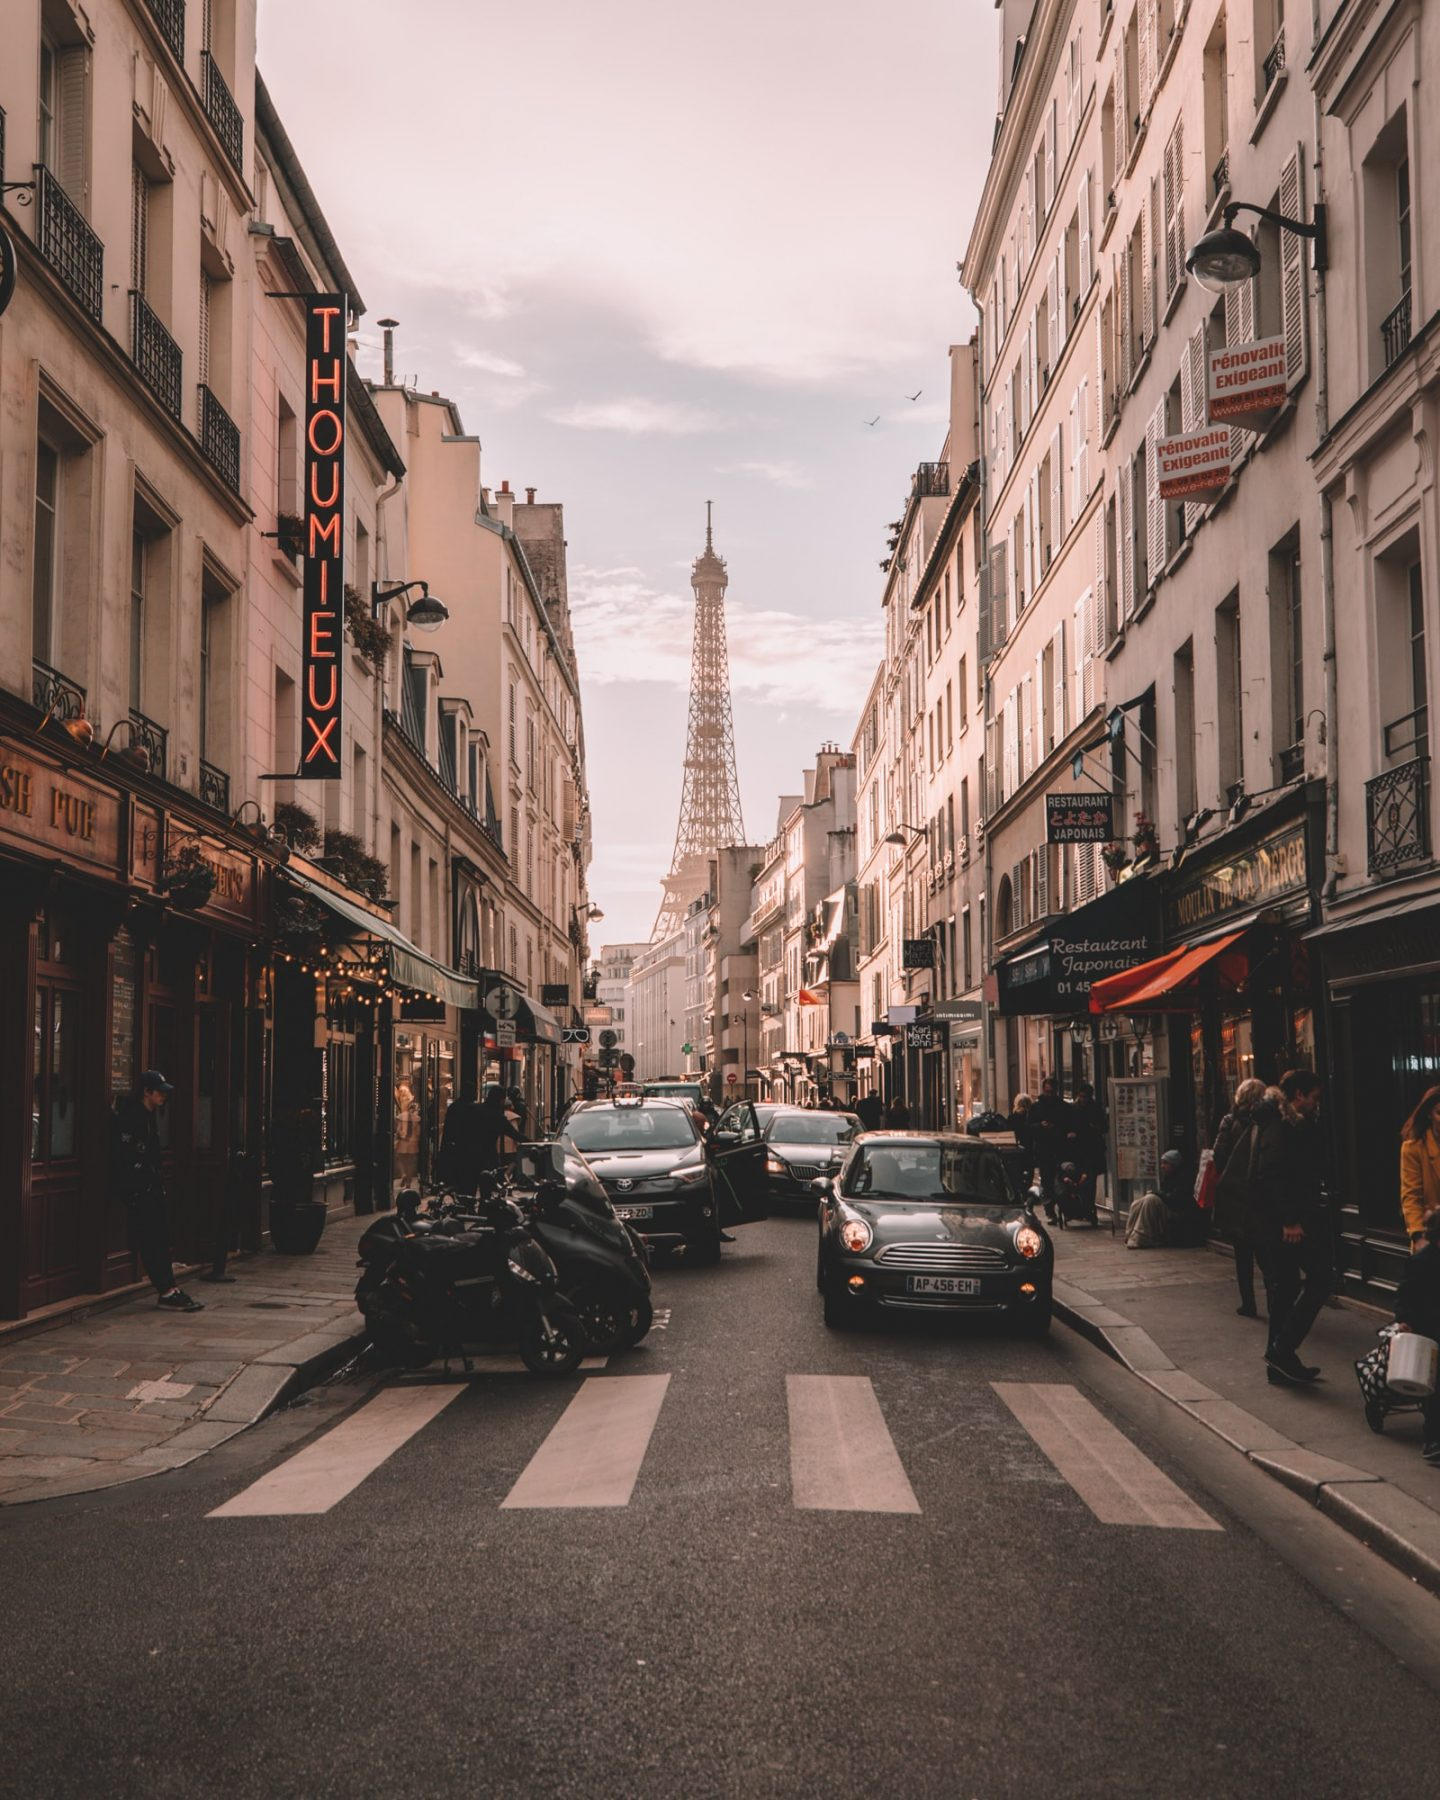 TOP 11 SOCIALLY DISTANT THINGS YOU CAN DO IN PARIS